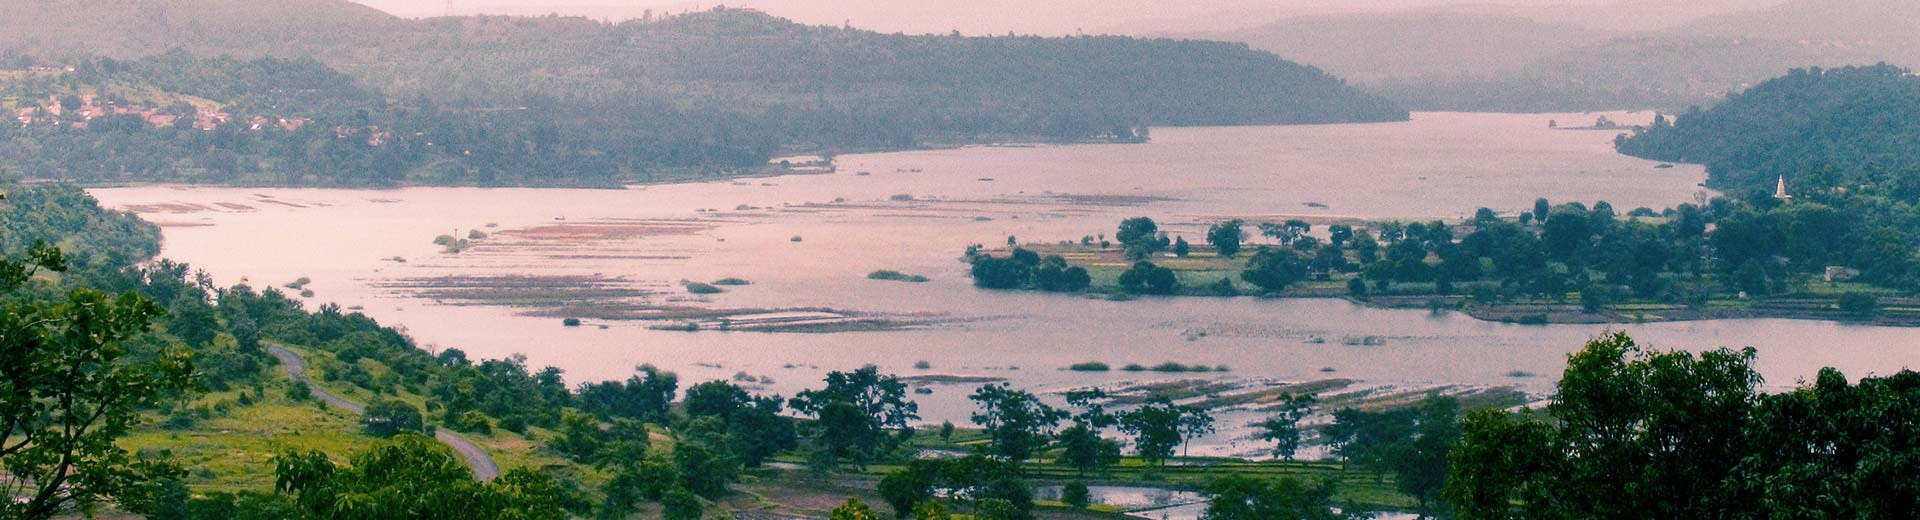 A vast, marshy wetland near Pune, with trees stretching as far as you can see in the half-light of dusk or dawn